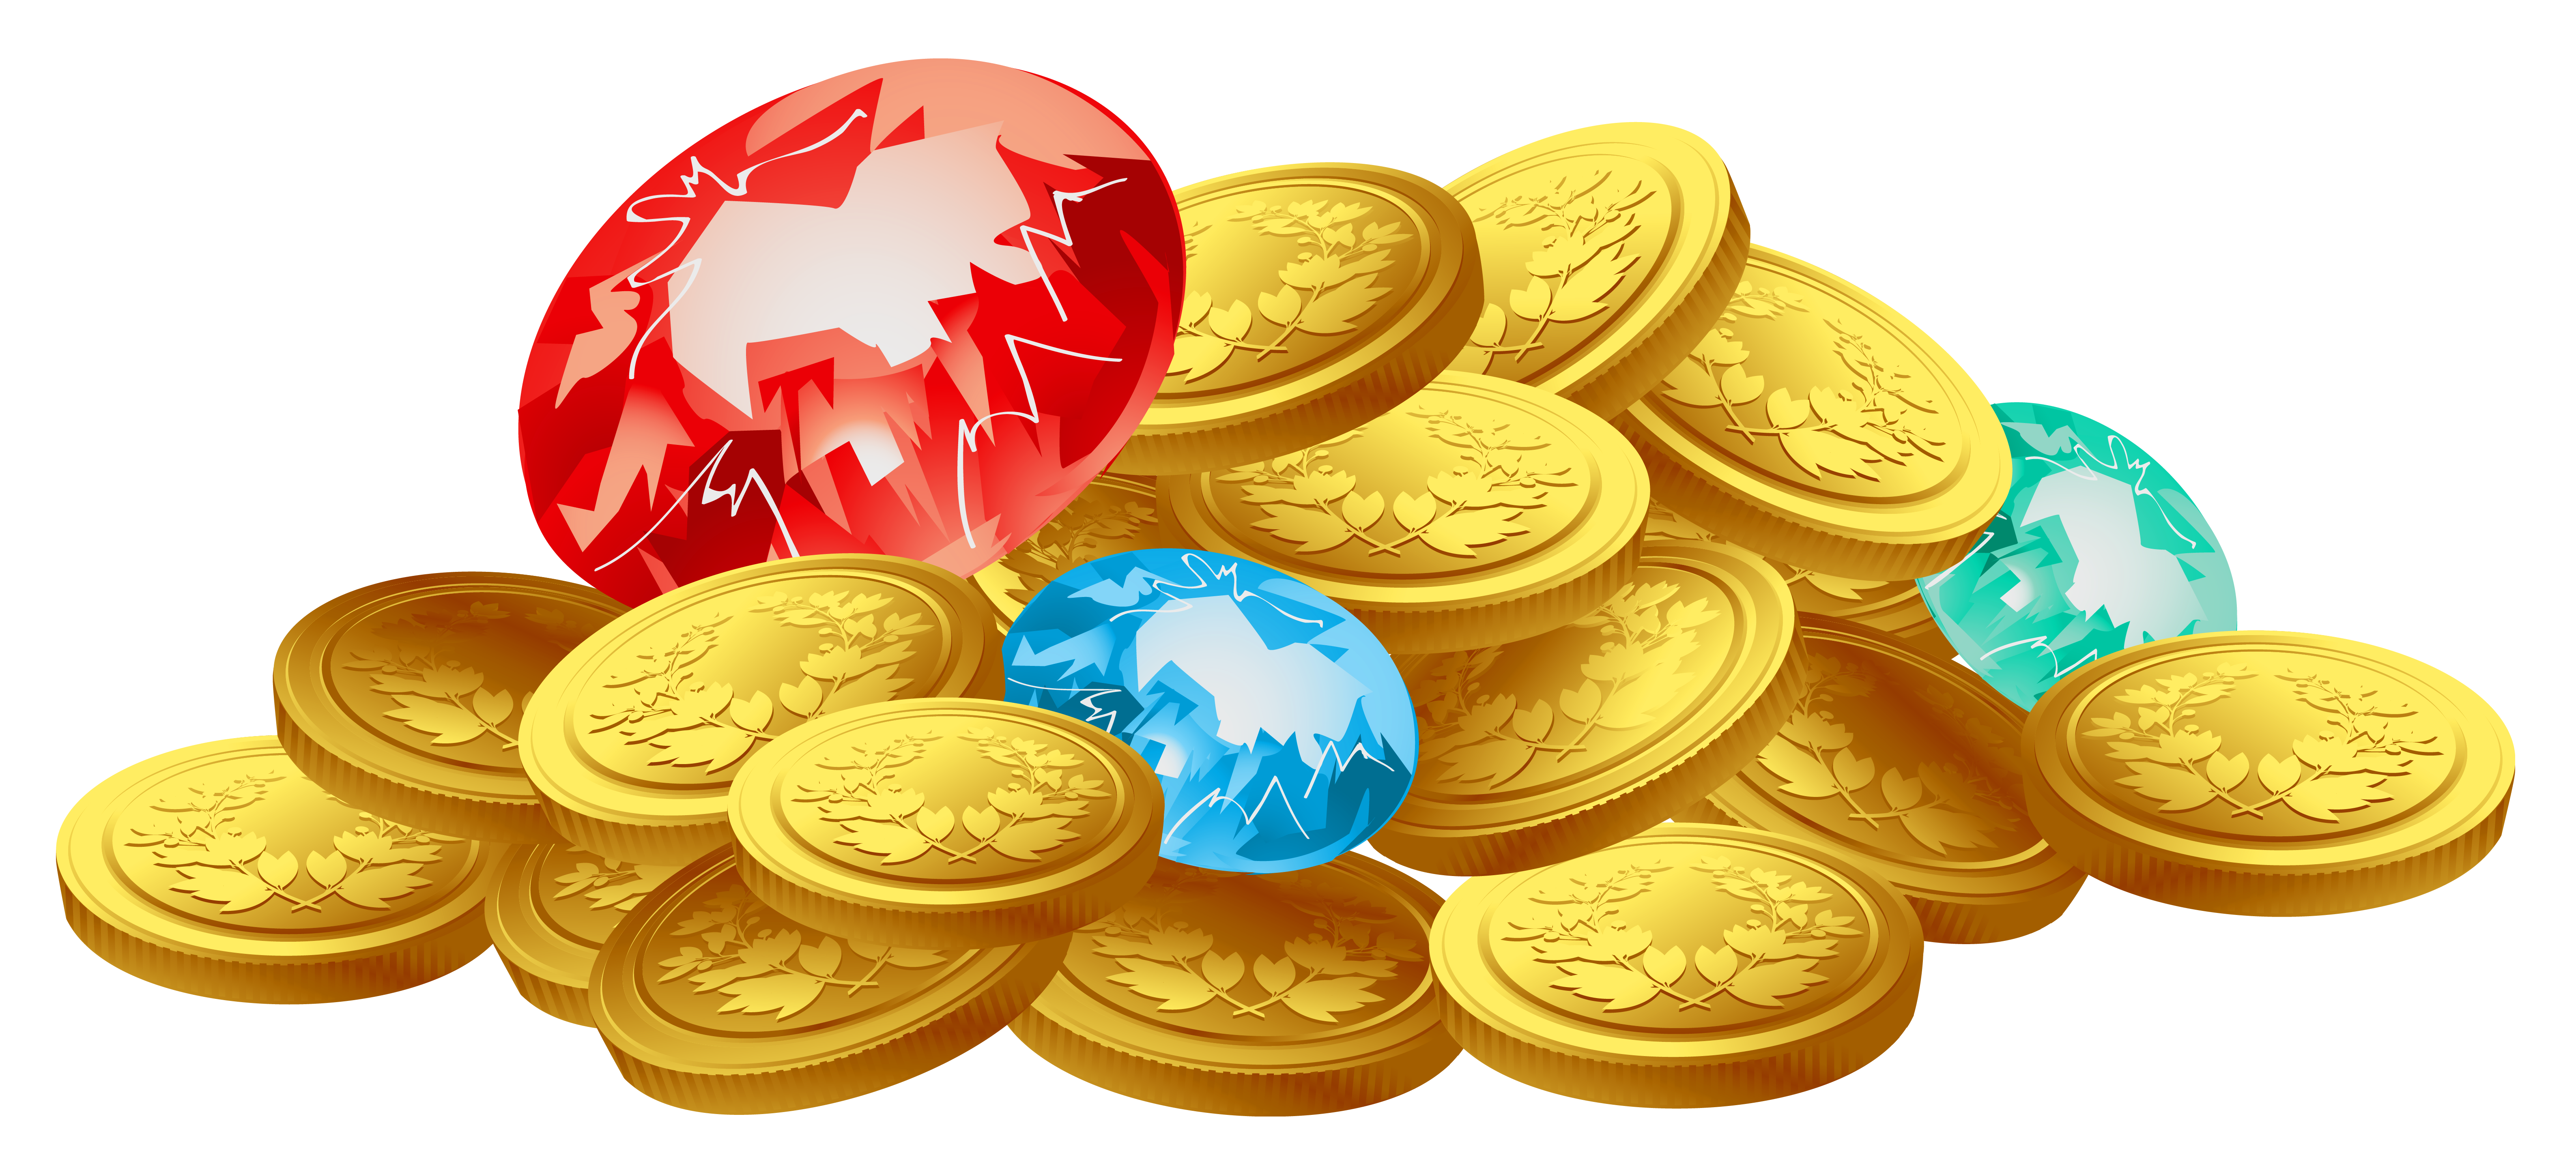 Treasure clipart pearl Treasure Coins clipart money and